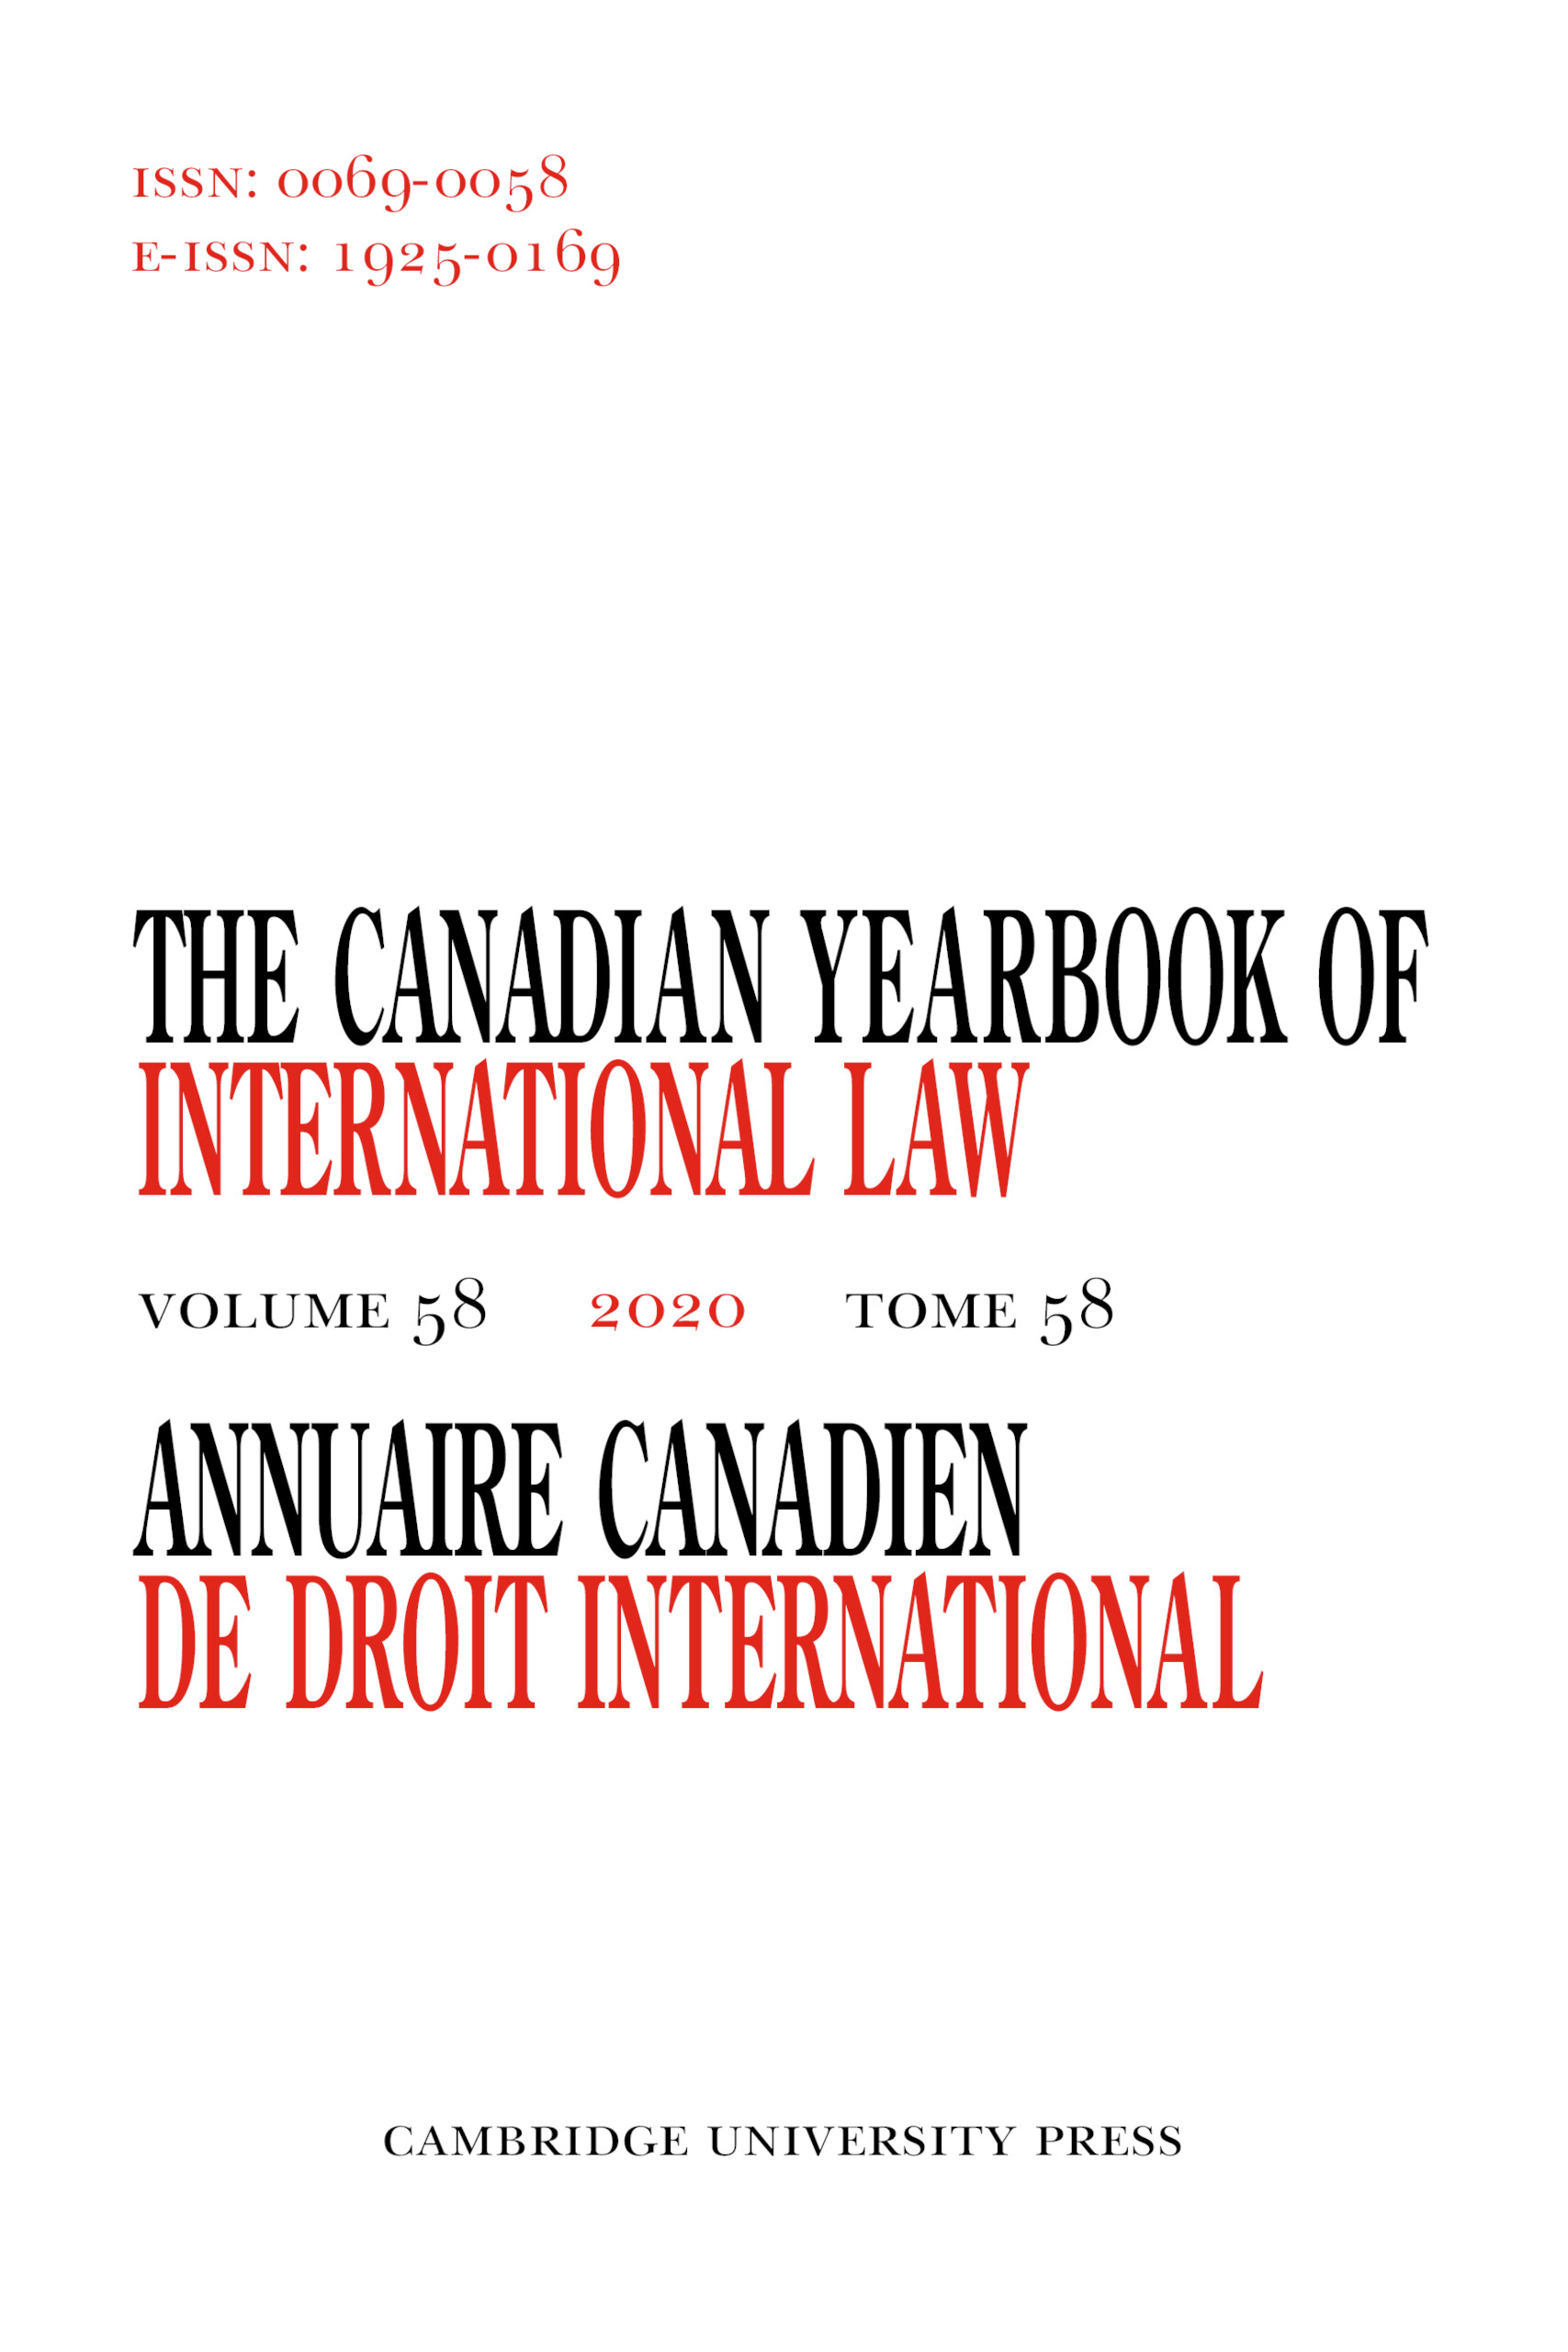 Canadian Yearbook of International Law/Annuaire canadien de droit international